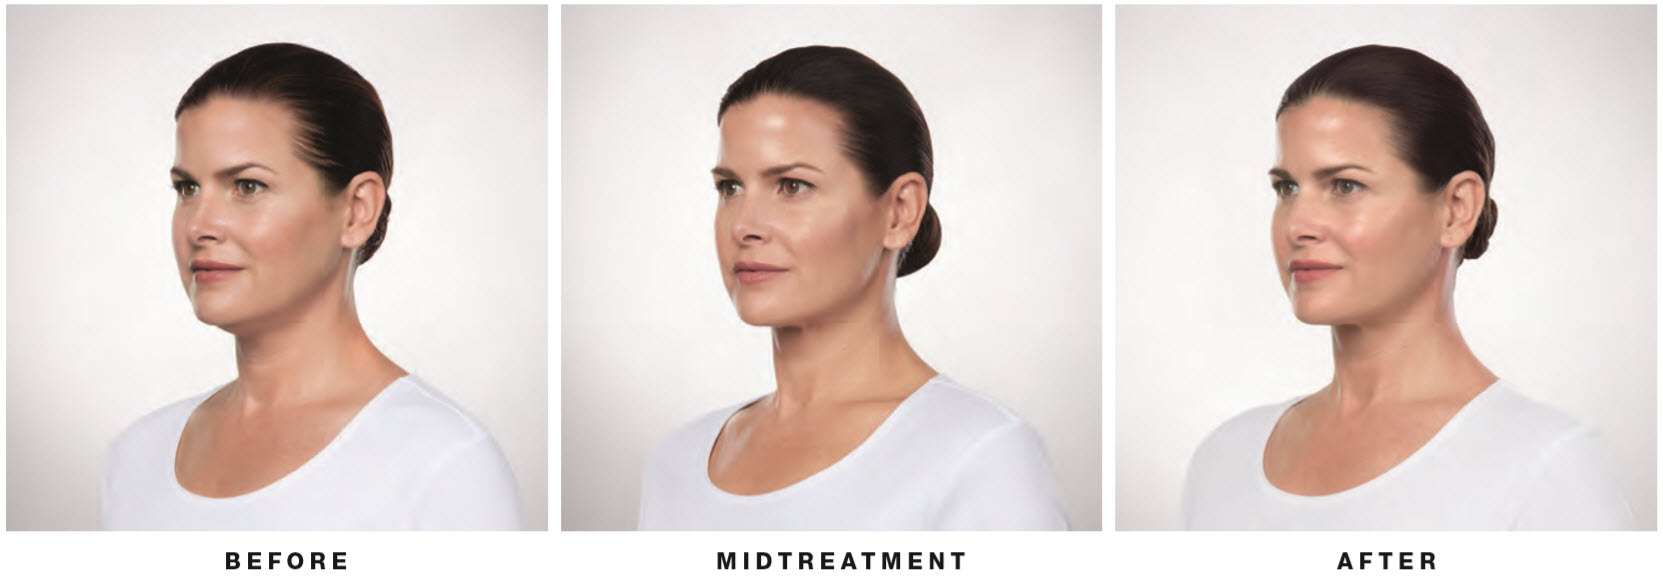 kybella-female-side-lake-norman-aesthetics-concierge-med-spa-laser-center-mooresville-nc-28117